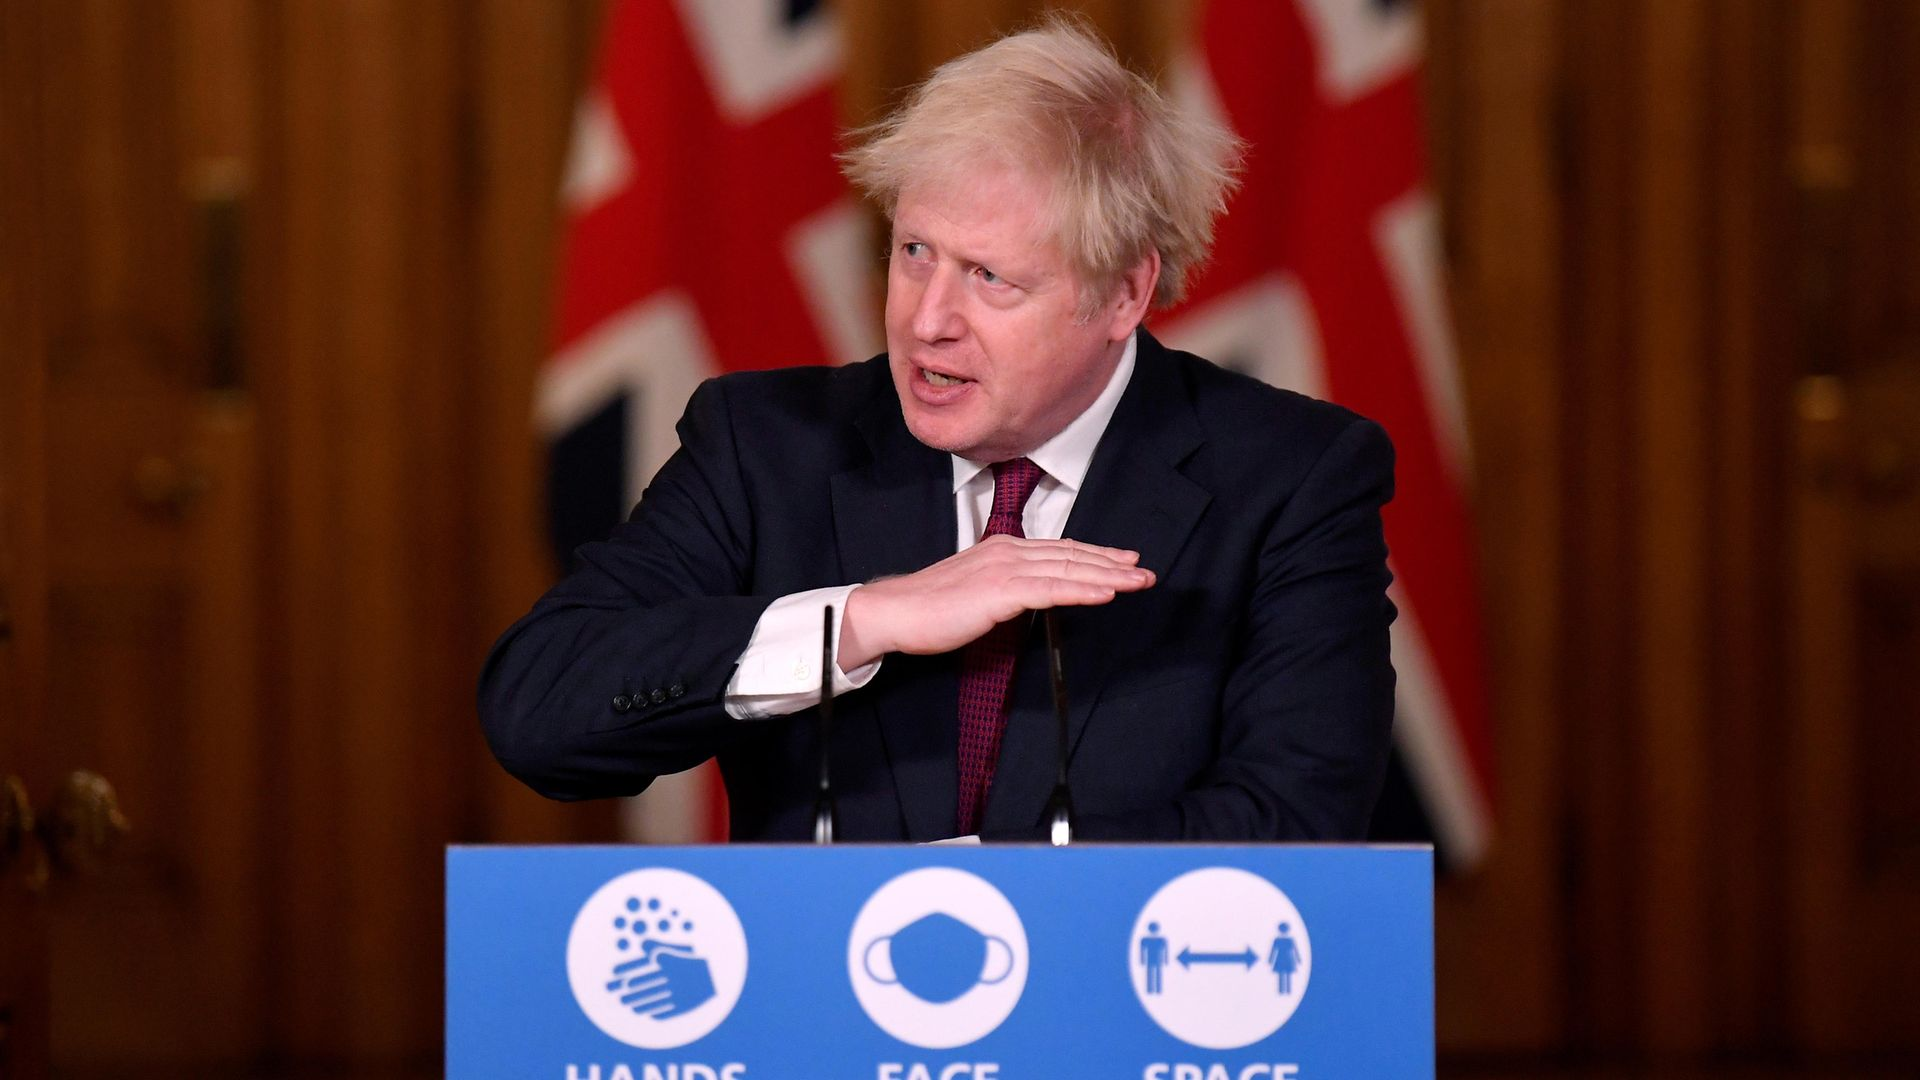 Prime Minister Boris Johnson speaks during a news conference in response to the ongoing situation with the Covid-19 pandemic, at 10 Downing Street, London. - Credit: PA